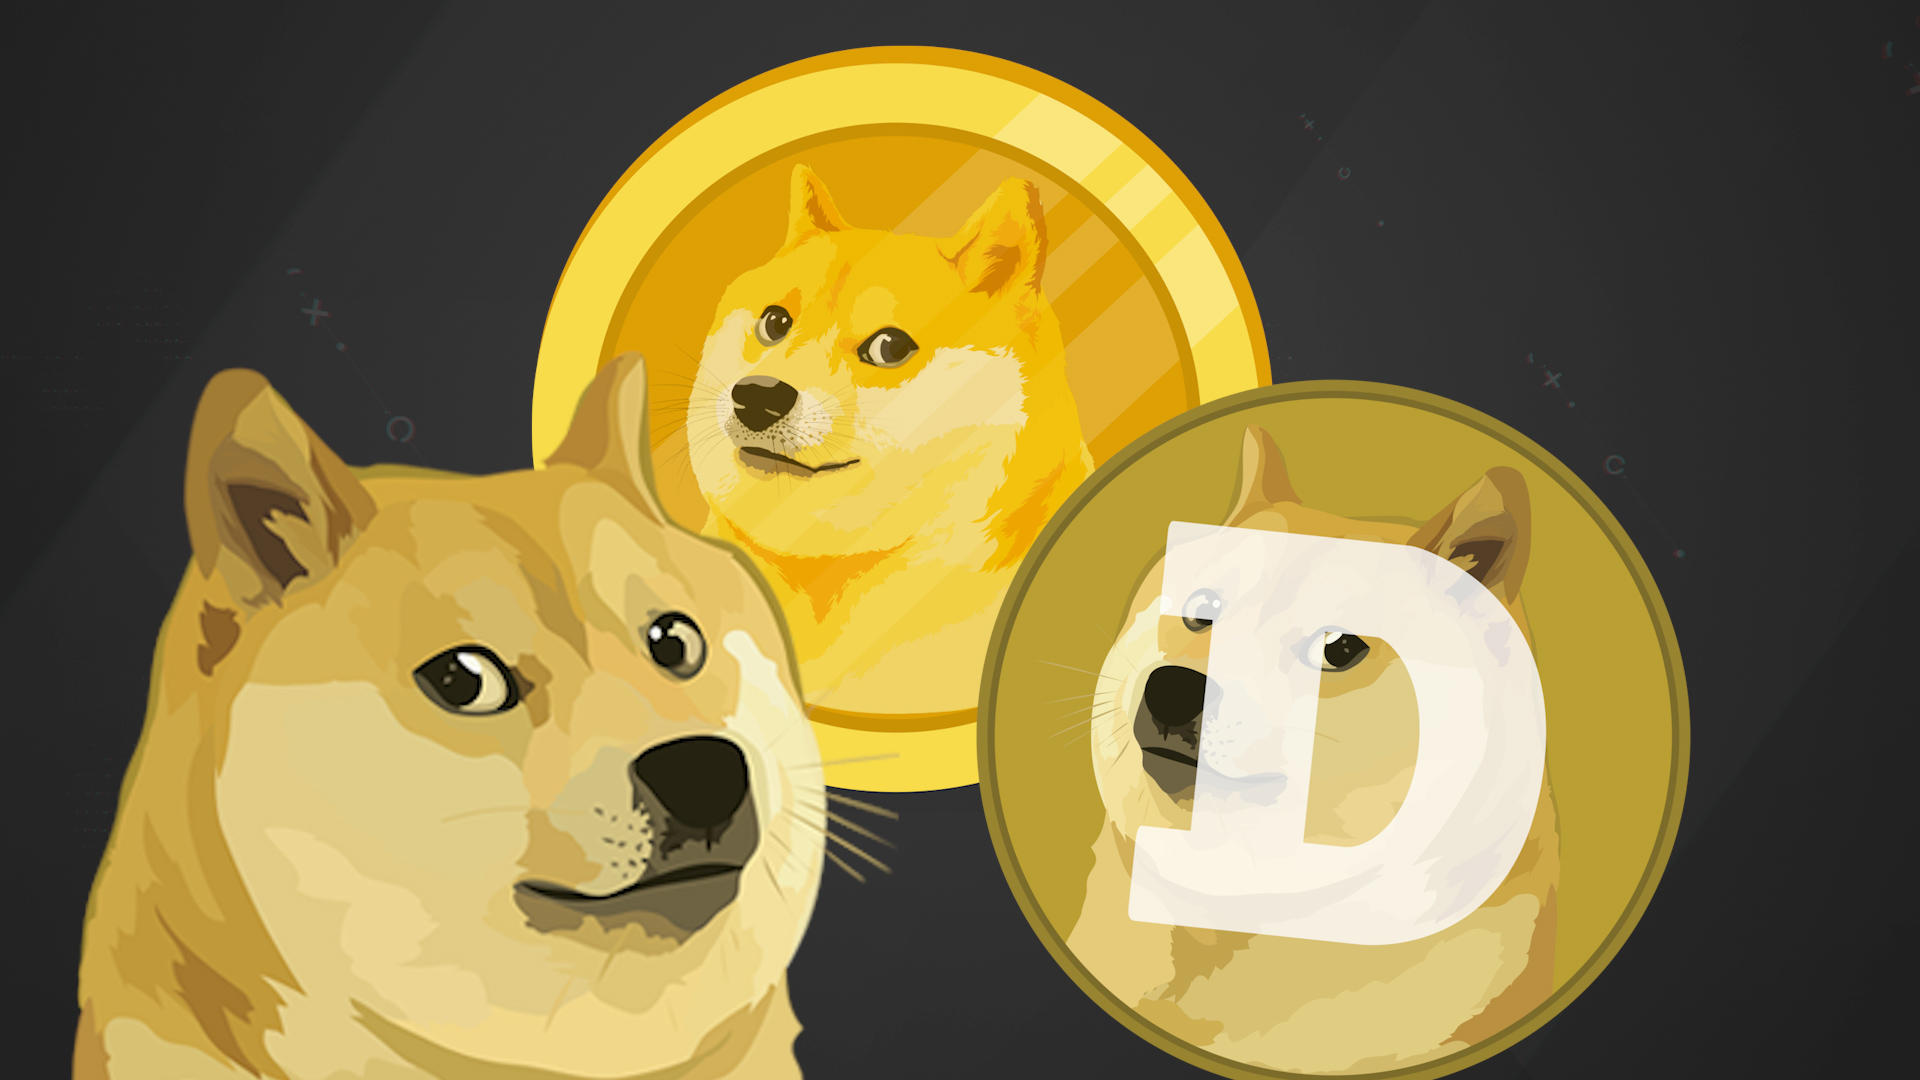 Video: Dogecoin explained: The joke cryptocurrency worth serious money